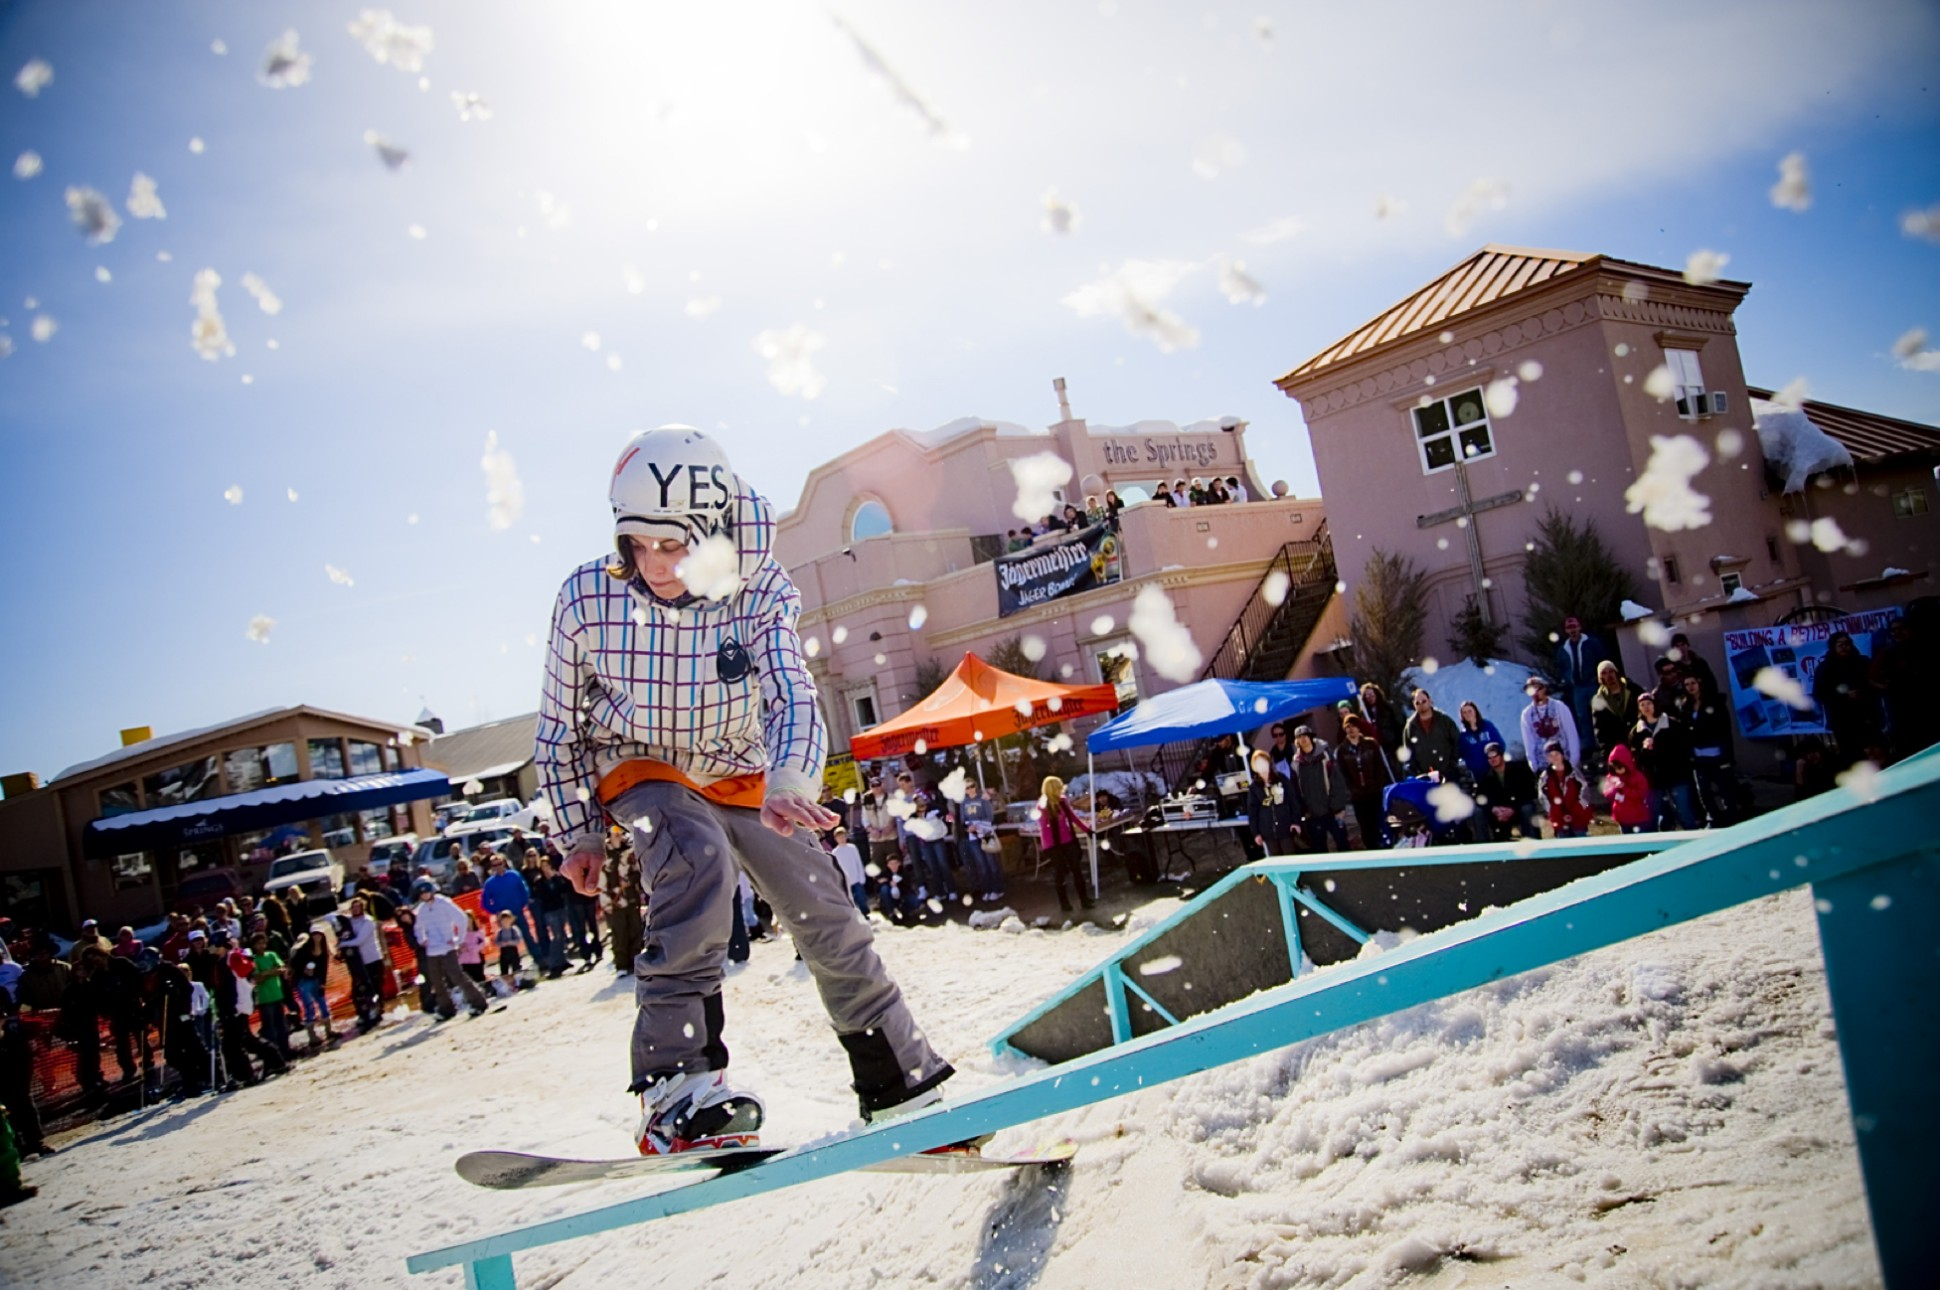 A snowboarder complete a rail slide in an event at The Springs Resort in downtown Pagosa Springs